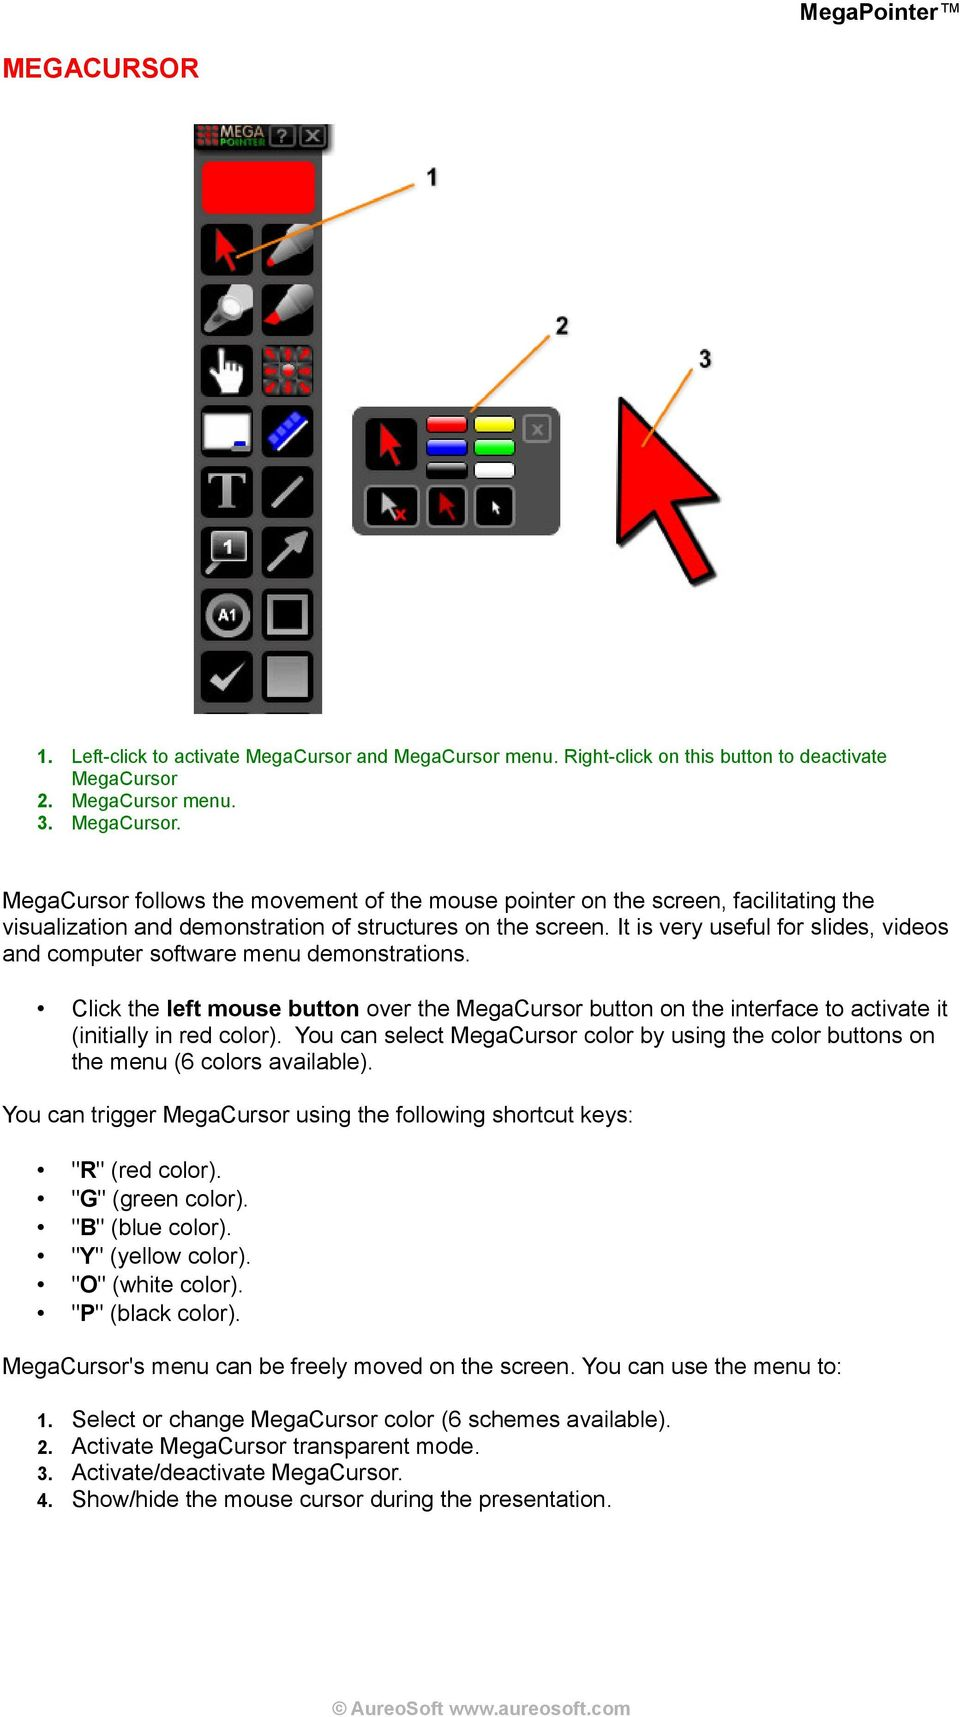 "You can select MegaCursor color by using the color buttons on the menu (6 colors available). You can trigger MegaCursor using the following shortcut keys: ""R"" (red color). ""G"" (green color)."